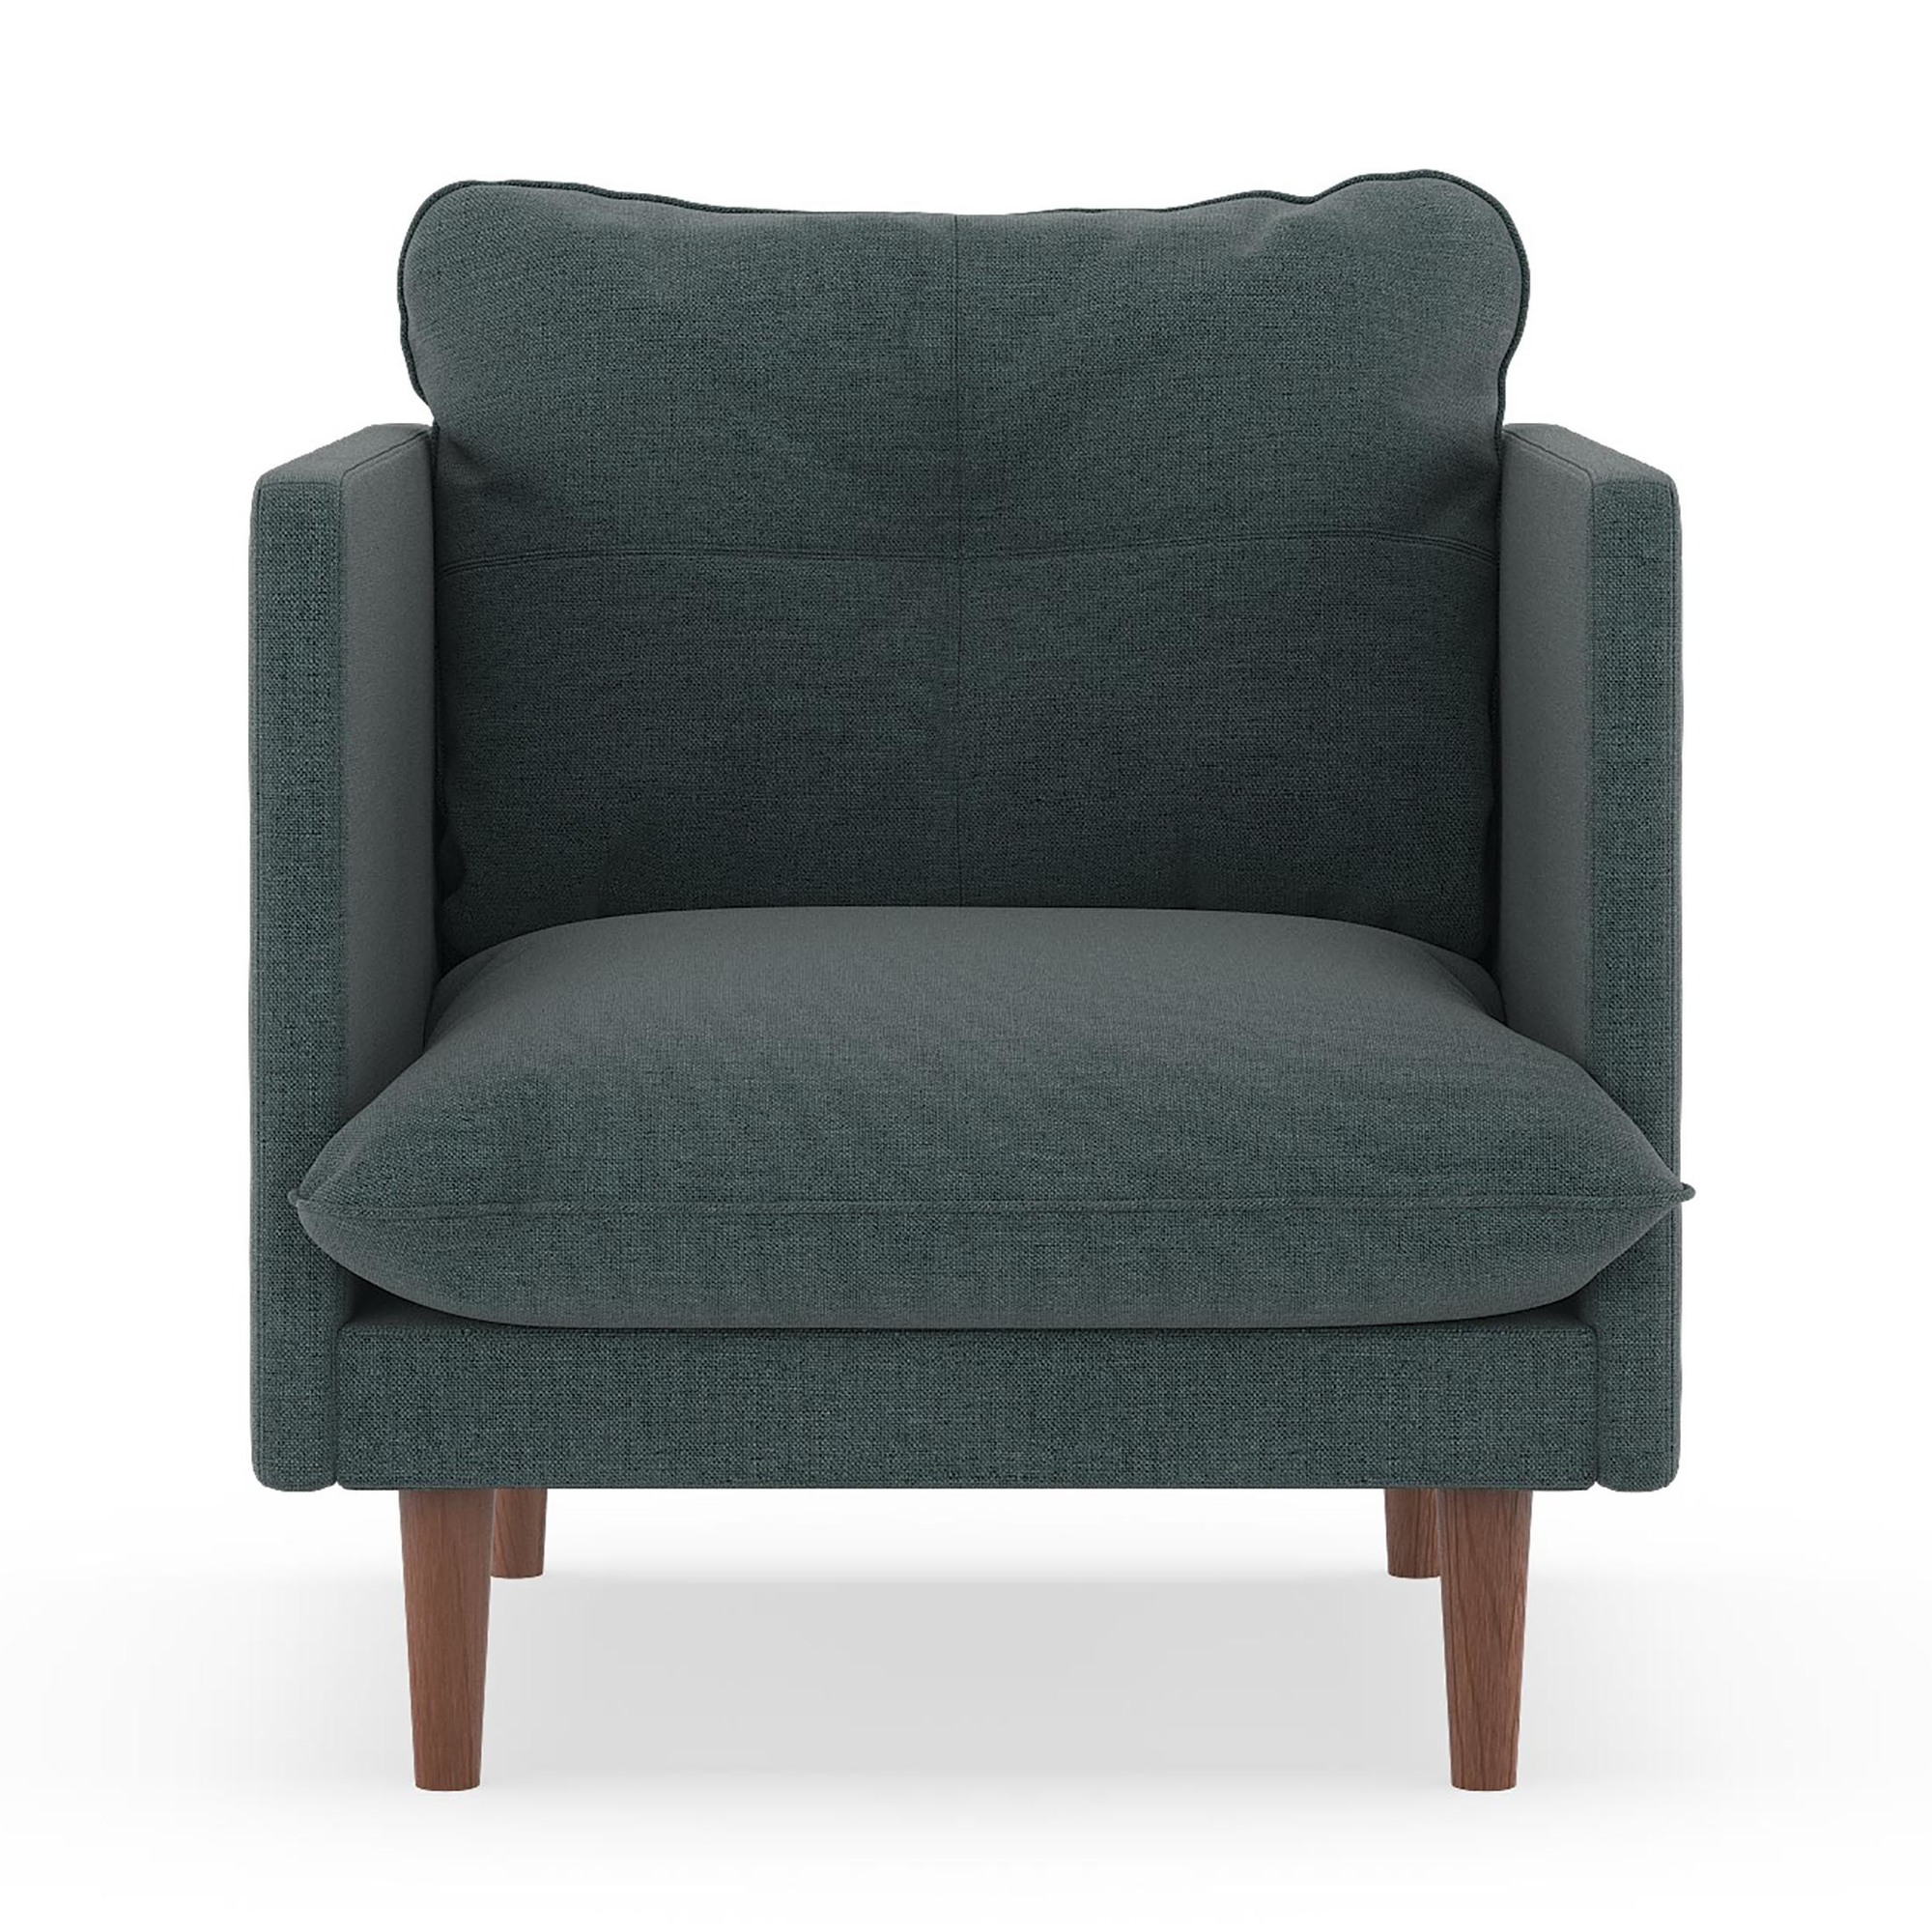 Easton Armchair Oxford Weave - Aegean Blue